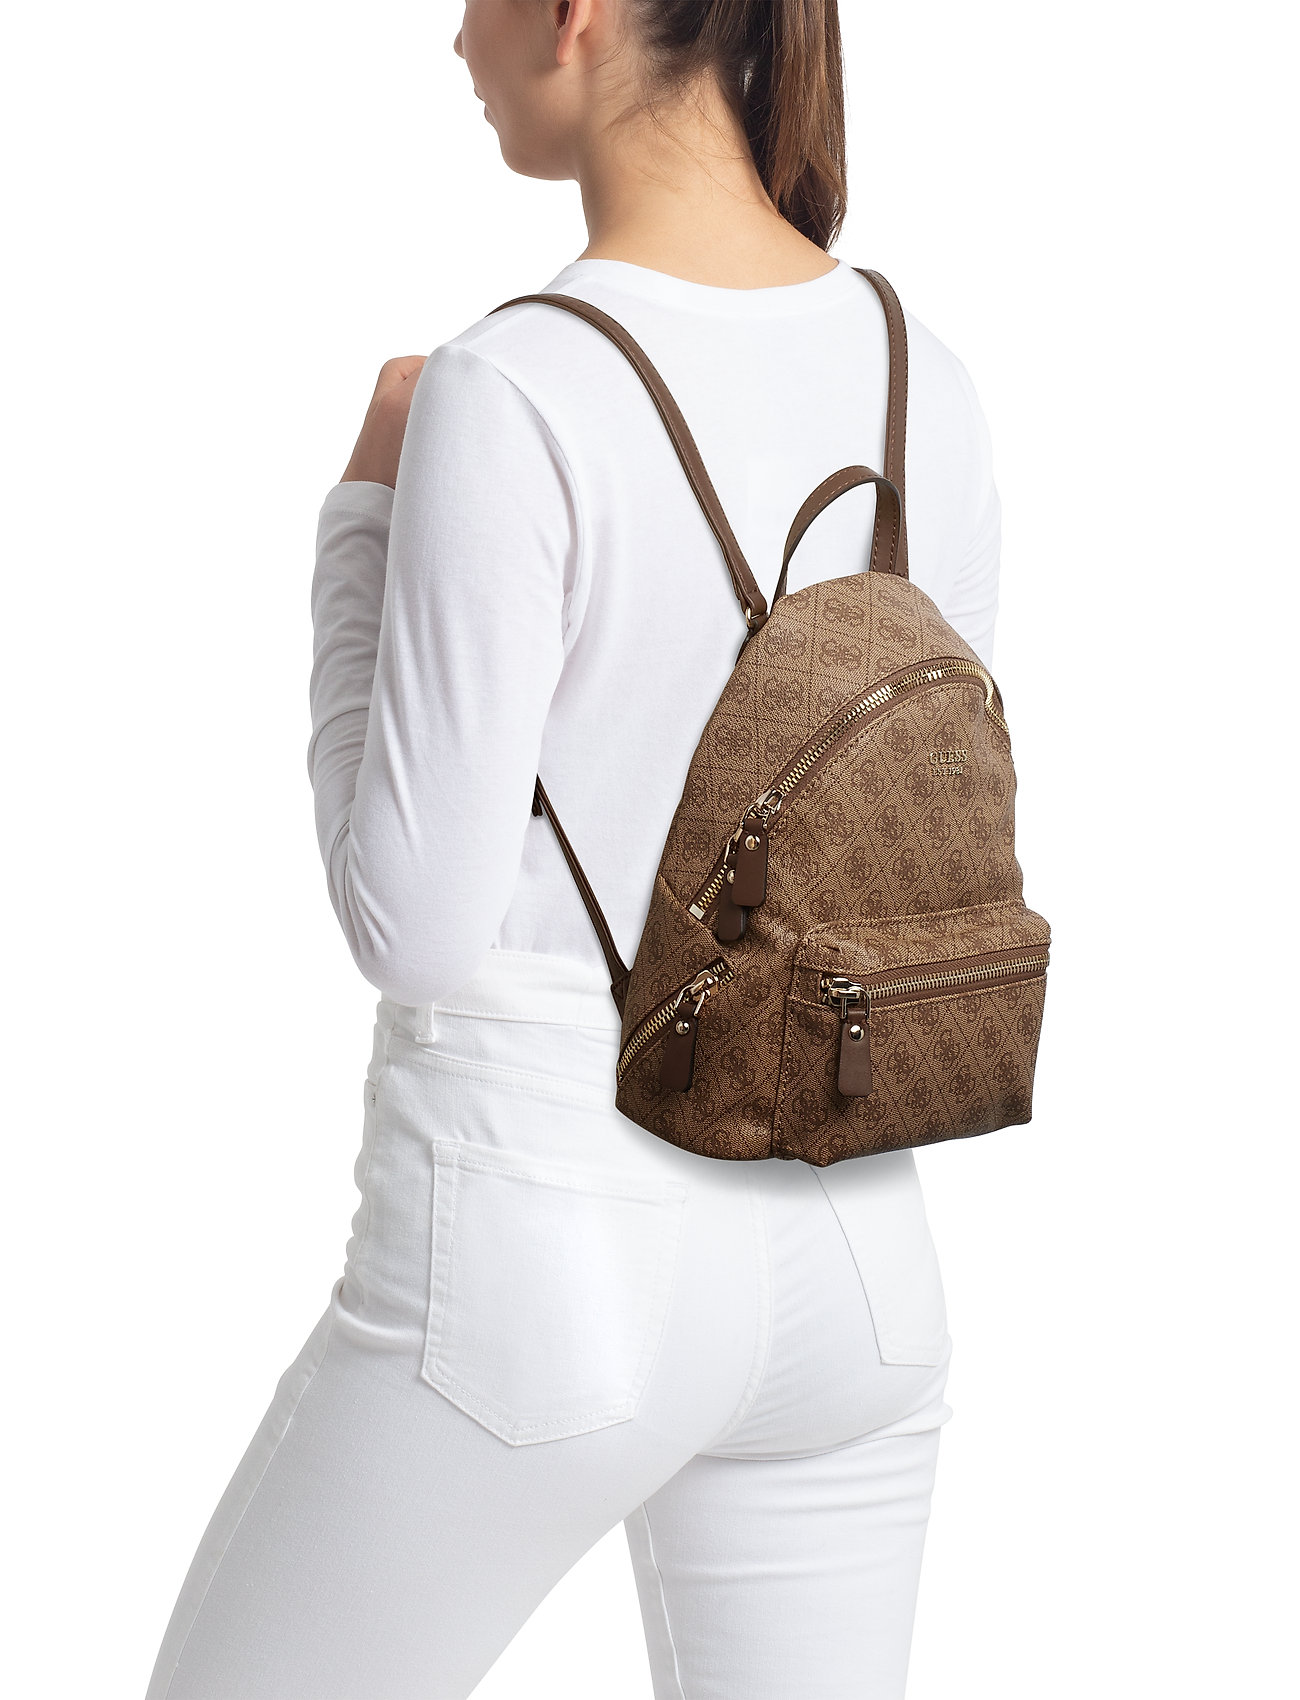 GUESS LEEZA SMALL BACKPACK - BROWN